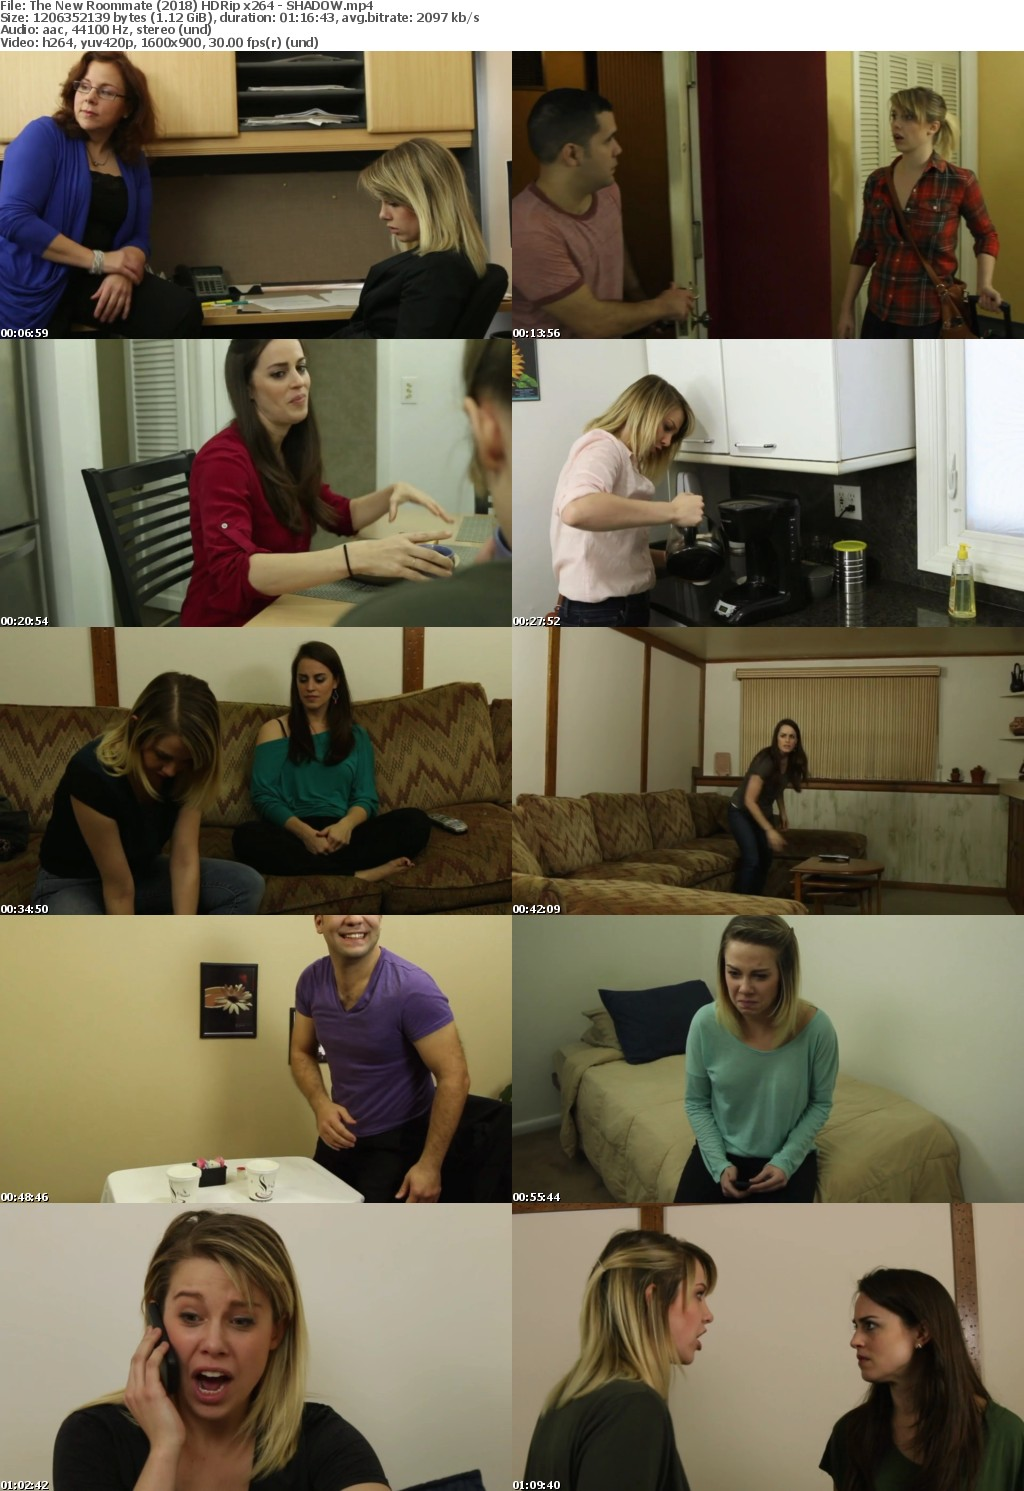 The New Roommate (2018) HDRip x264 - SHADOW